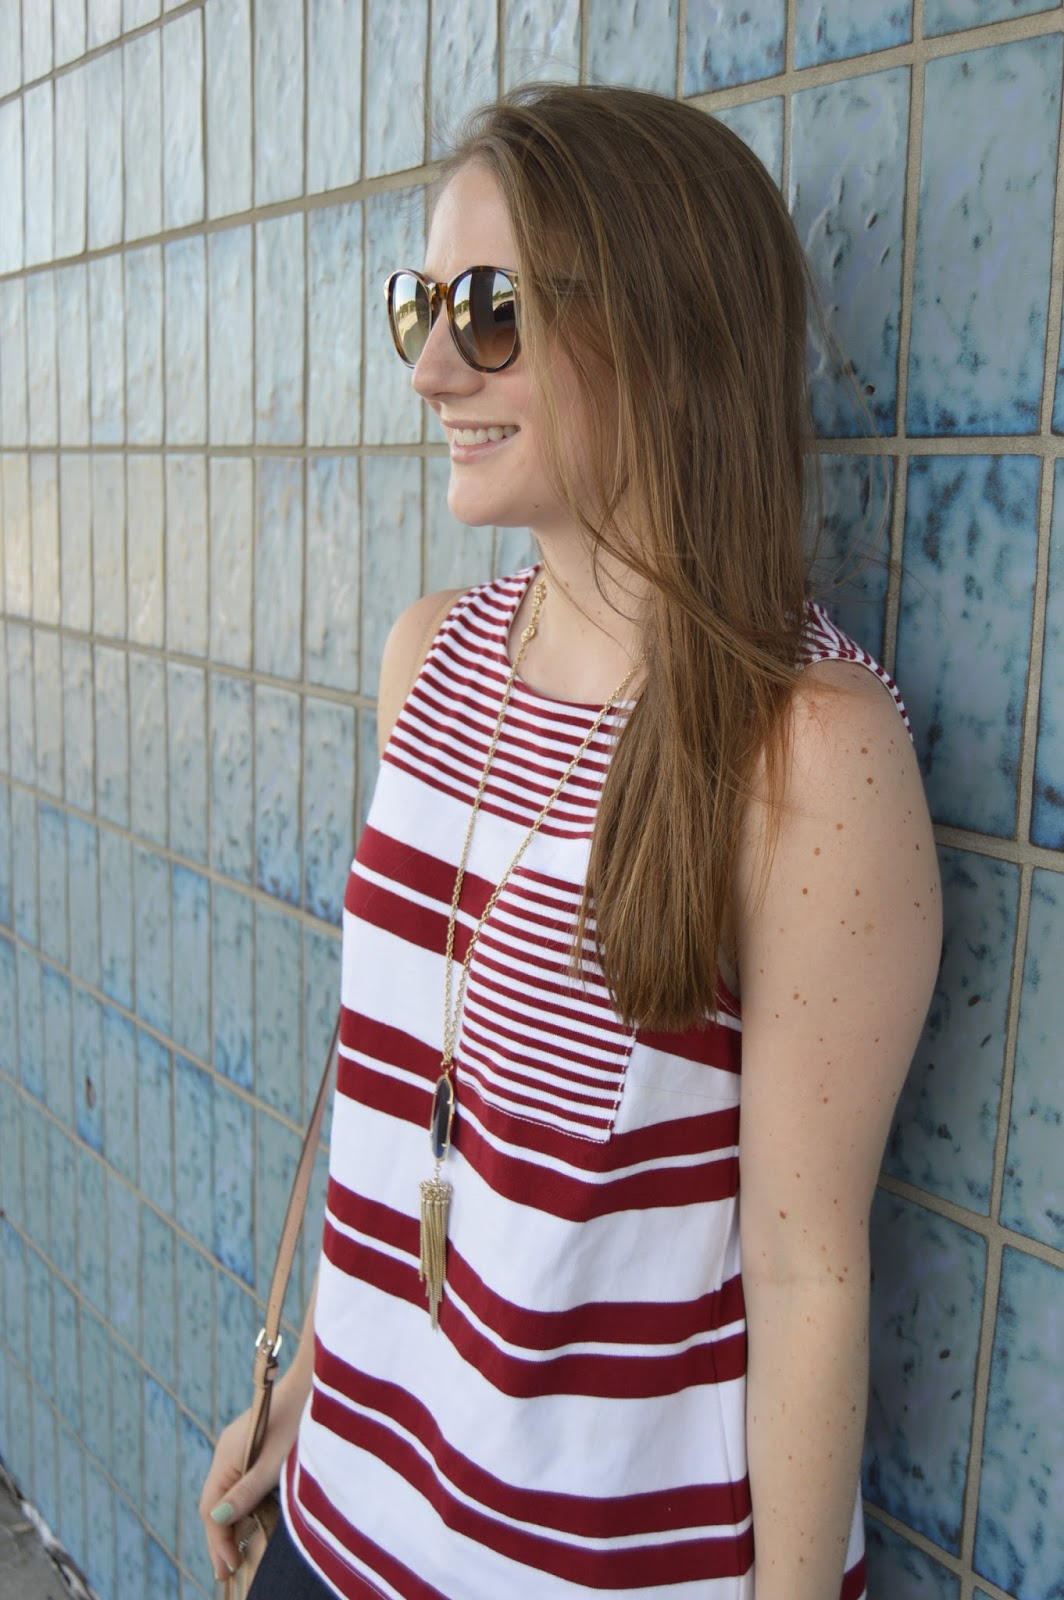 red and white striped tank top | summer lookbook | summer style | your life styled | a memory of us | cute tops for summer | what to wear this summer | red, white, and blue outfit ideas |